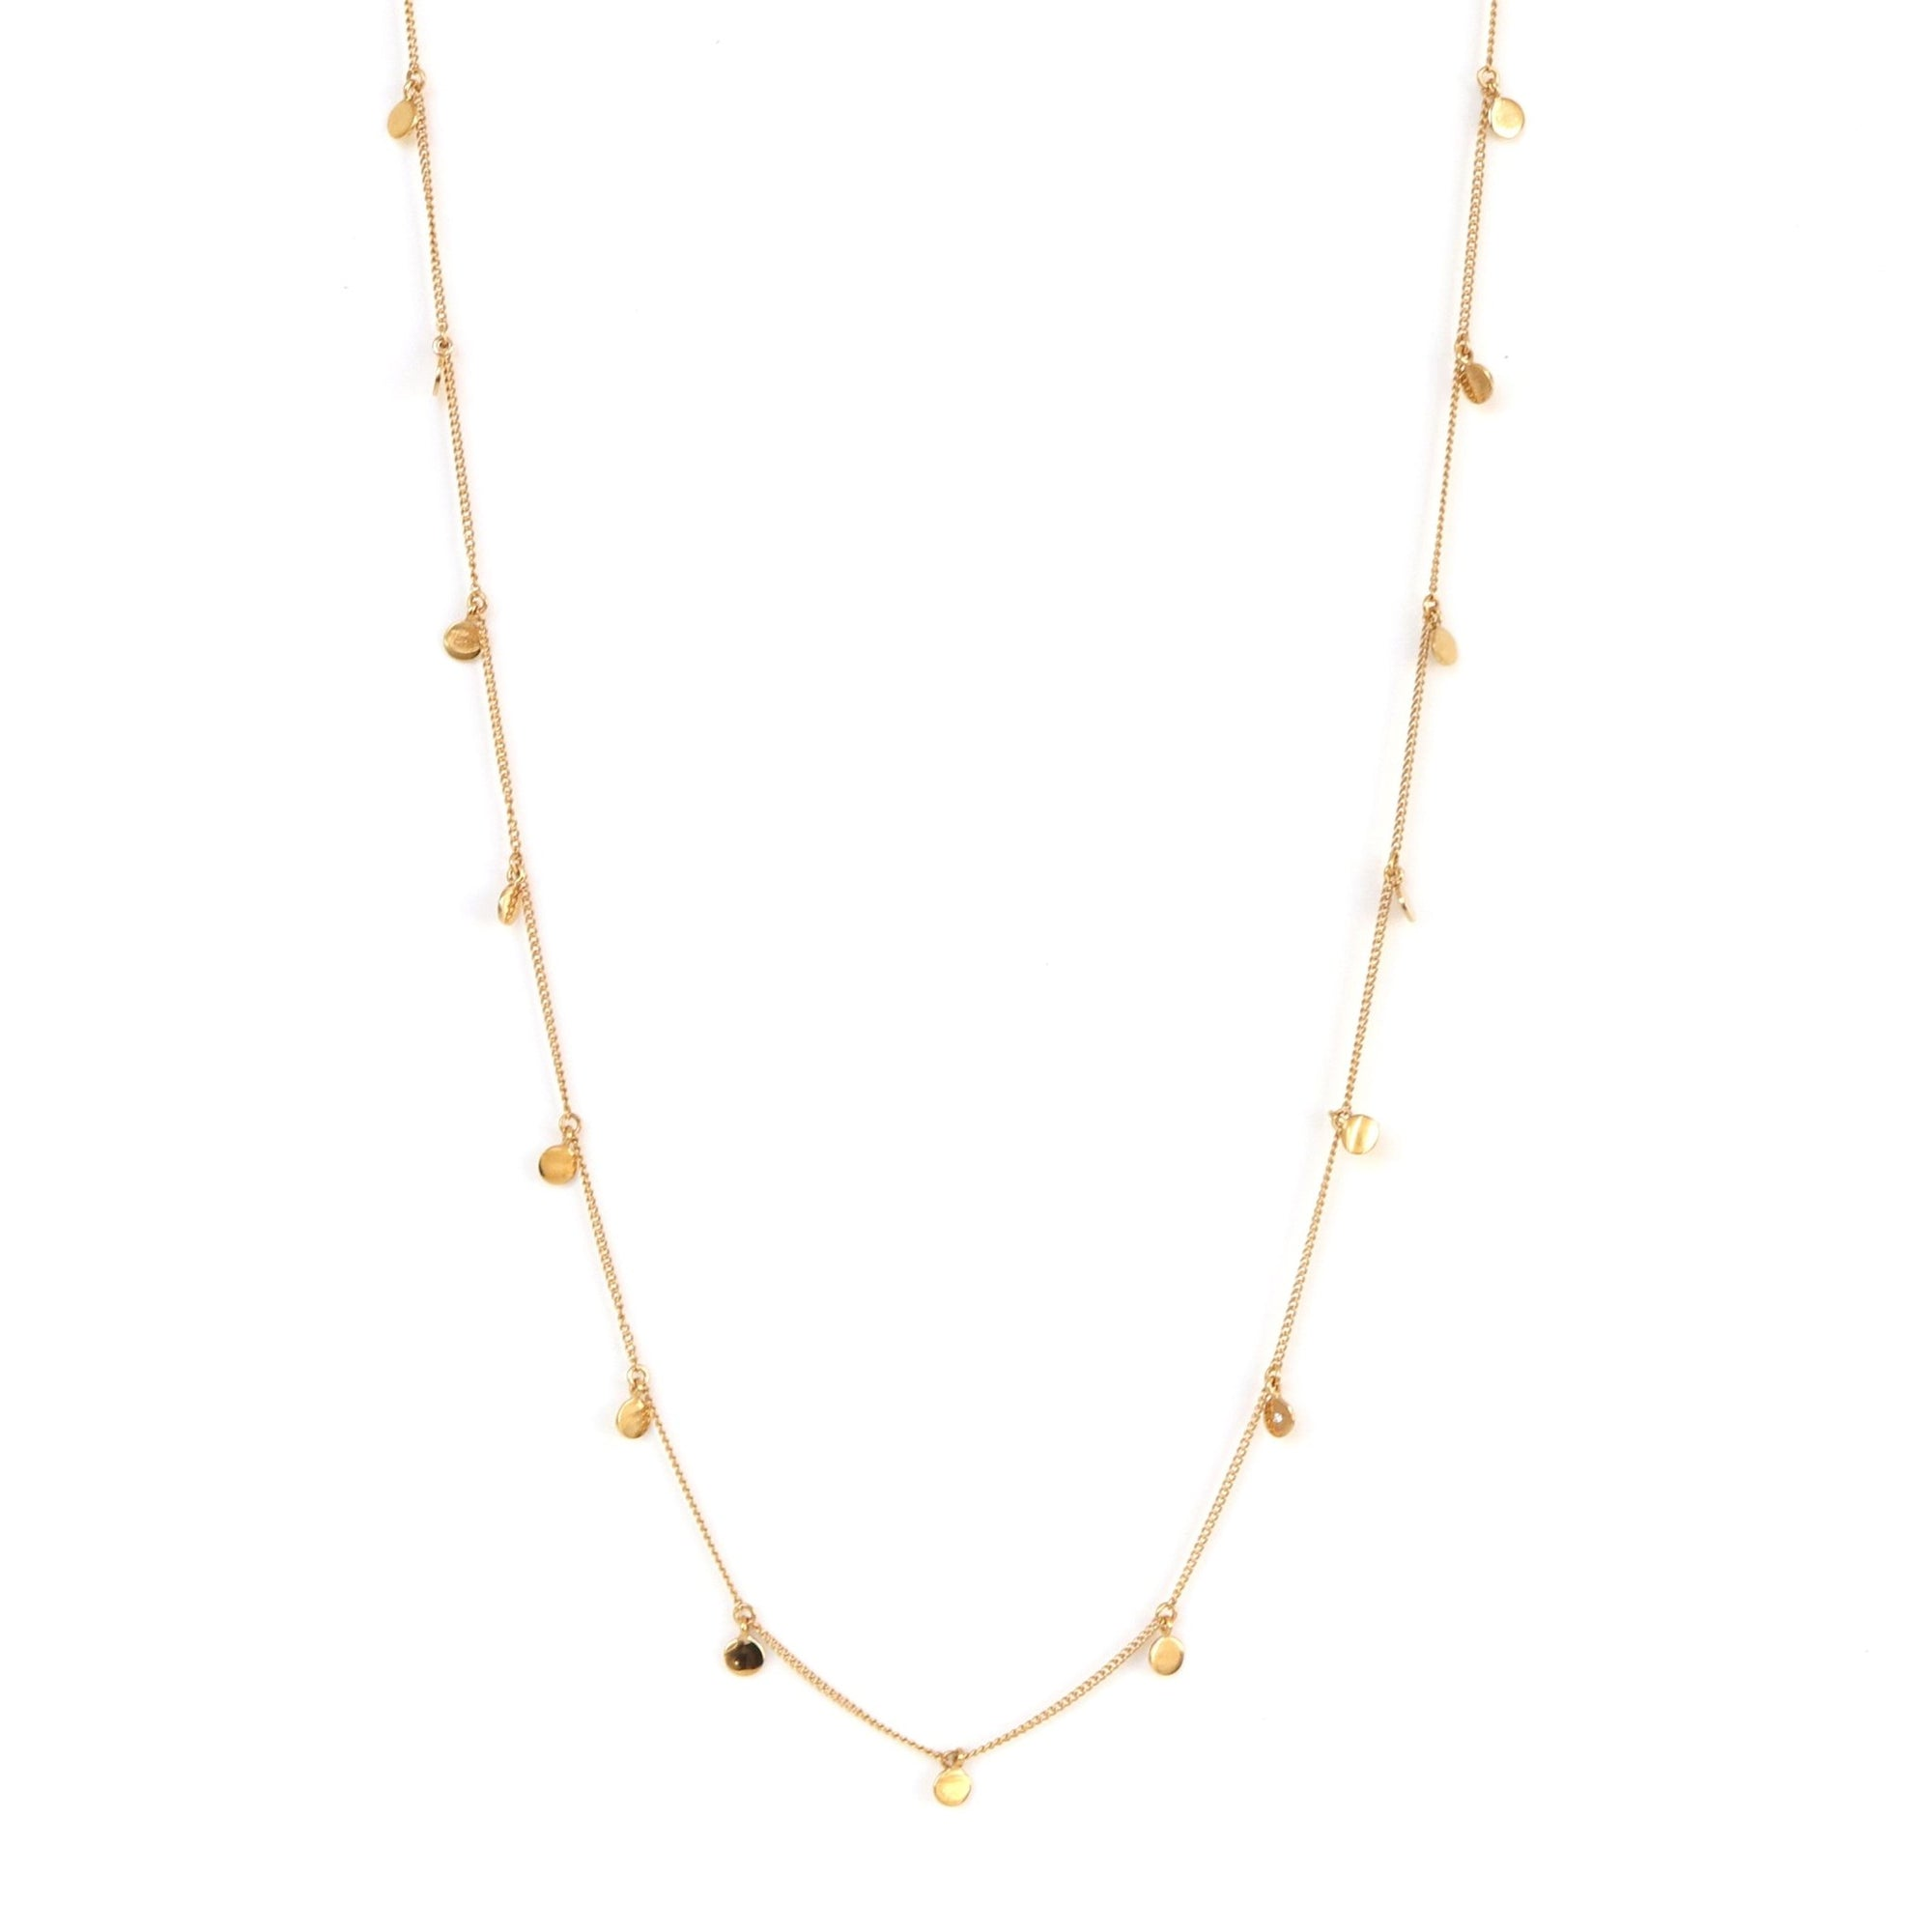 POISE LONG DISK NECKLACE - GOLD - SO PRETTY CARA COTTER